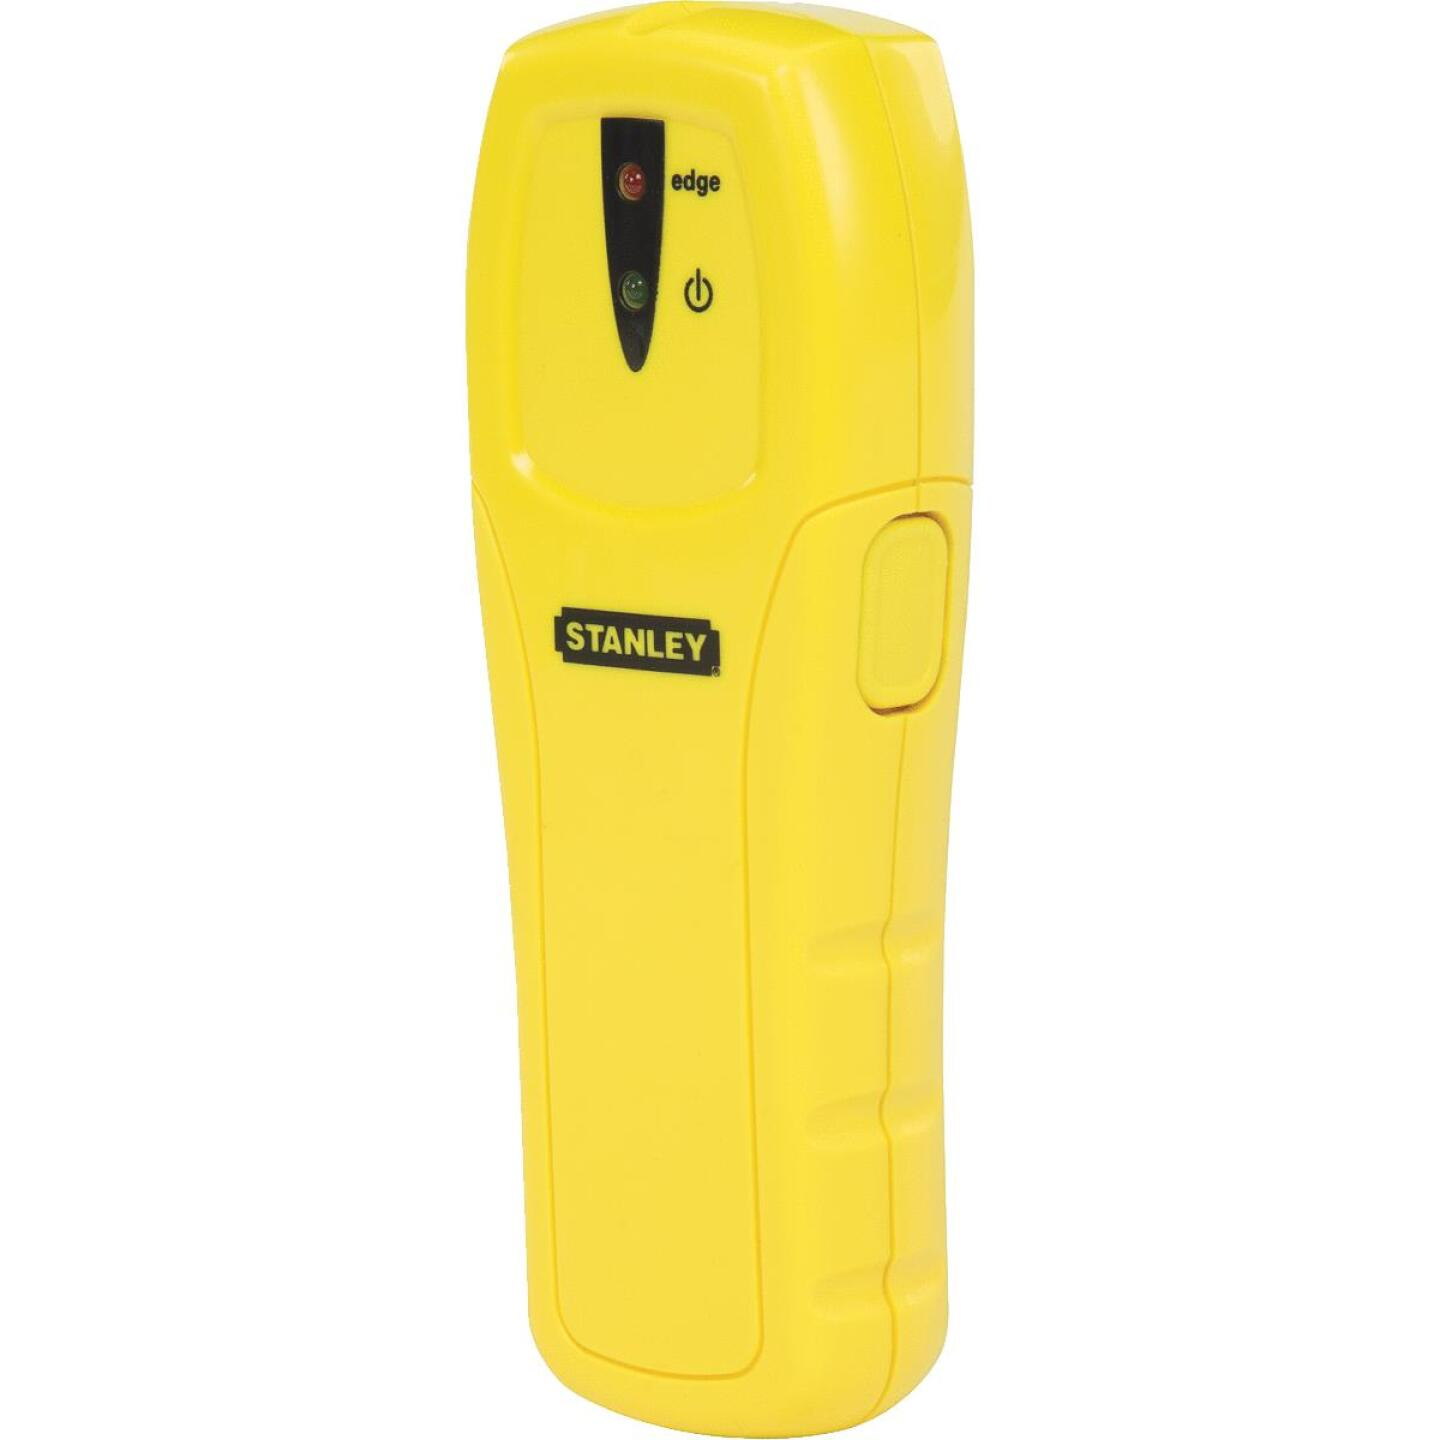 Stanley S50 Edge-Detect Stud Finder Image 1